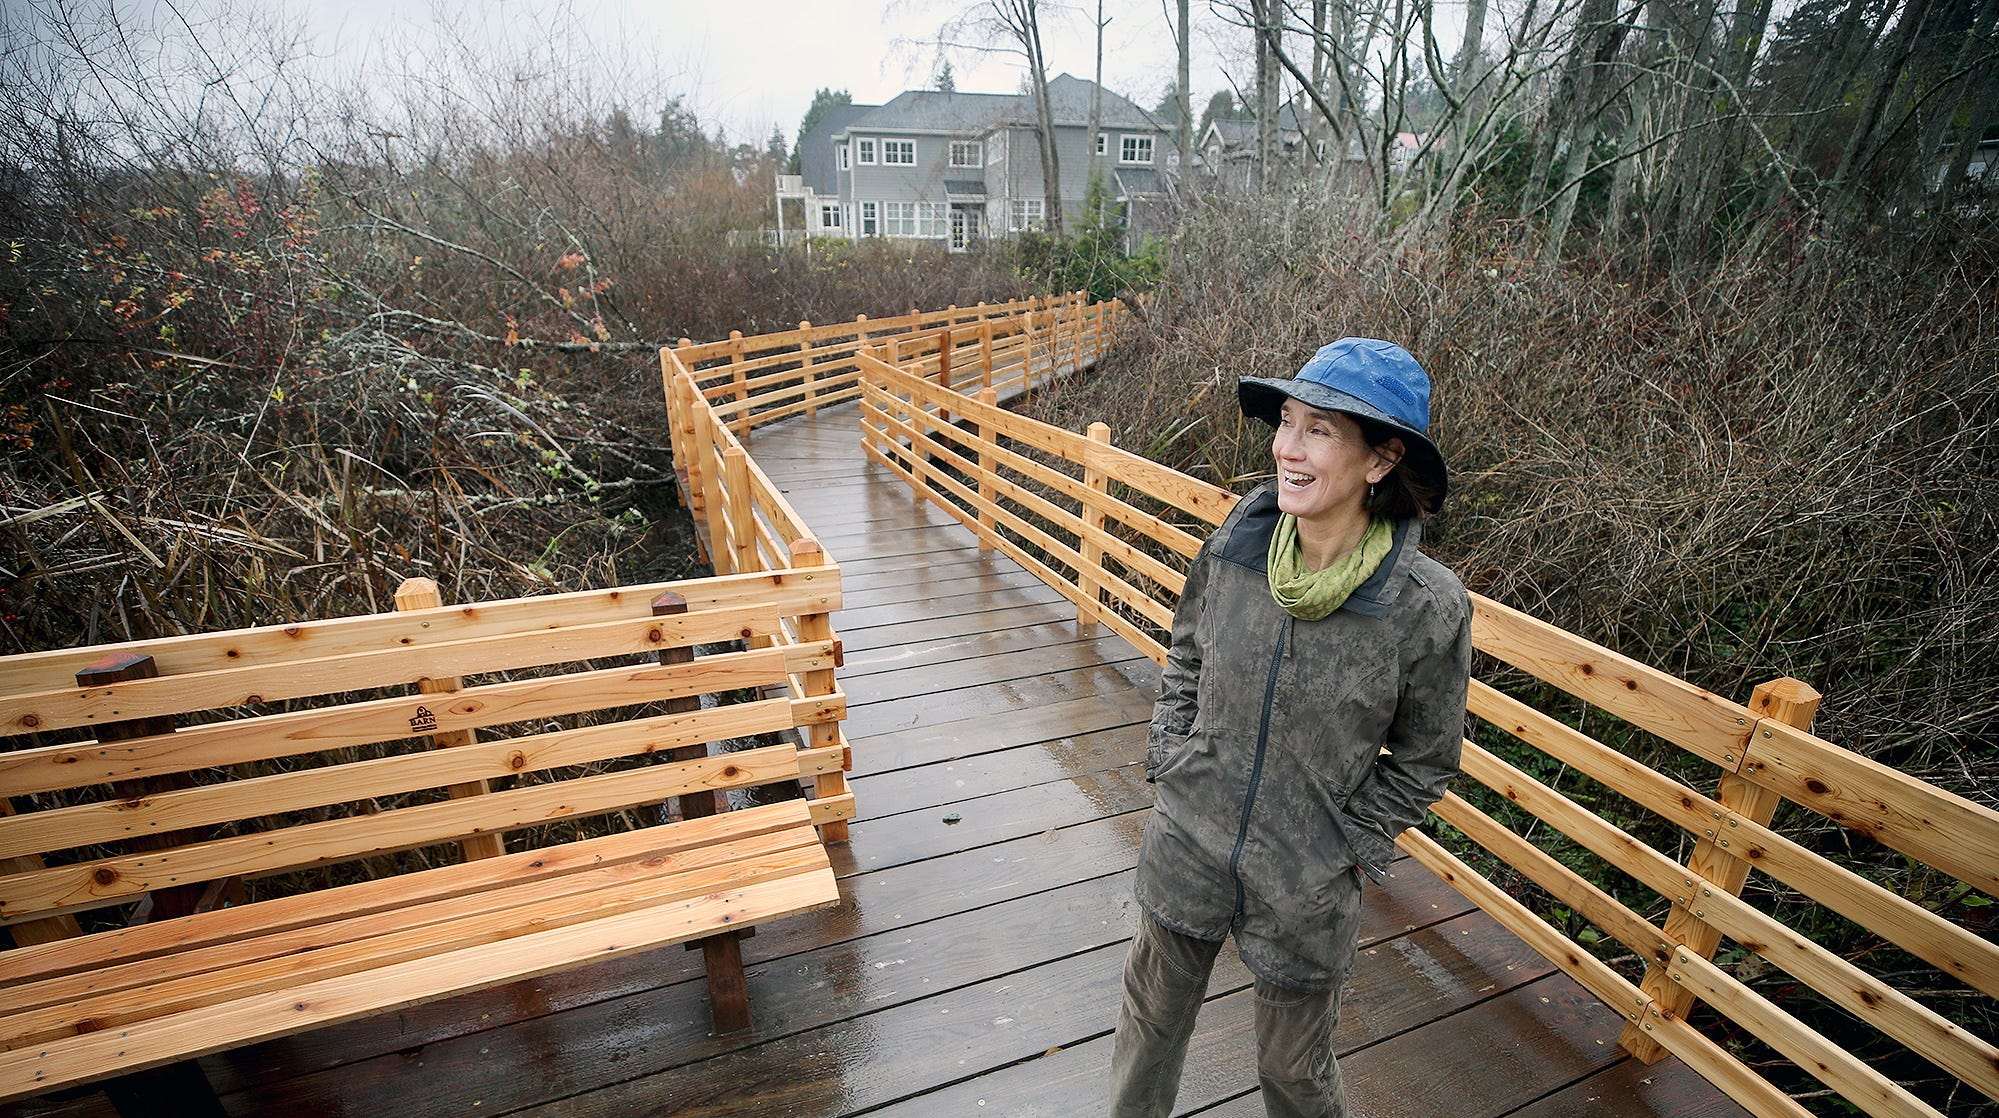 Barb Trafton of the Bainbridge Island Parks Foundation is on one of the new boardwalks at Hawley Cove Park on Bainbridge Island on a wet and windy Tuesday, December, 11, 2018.